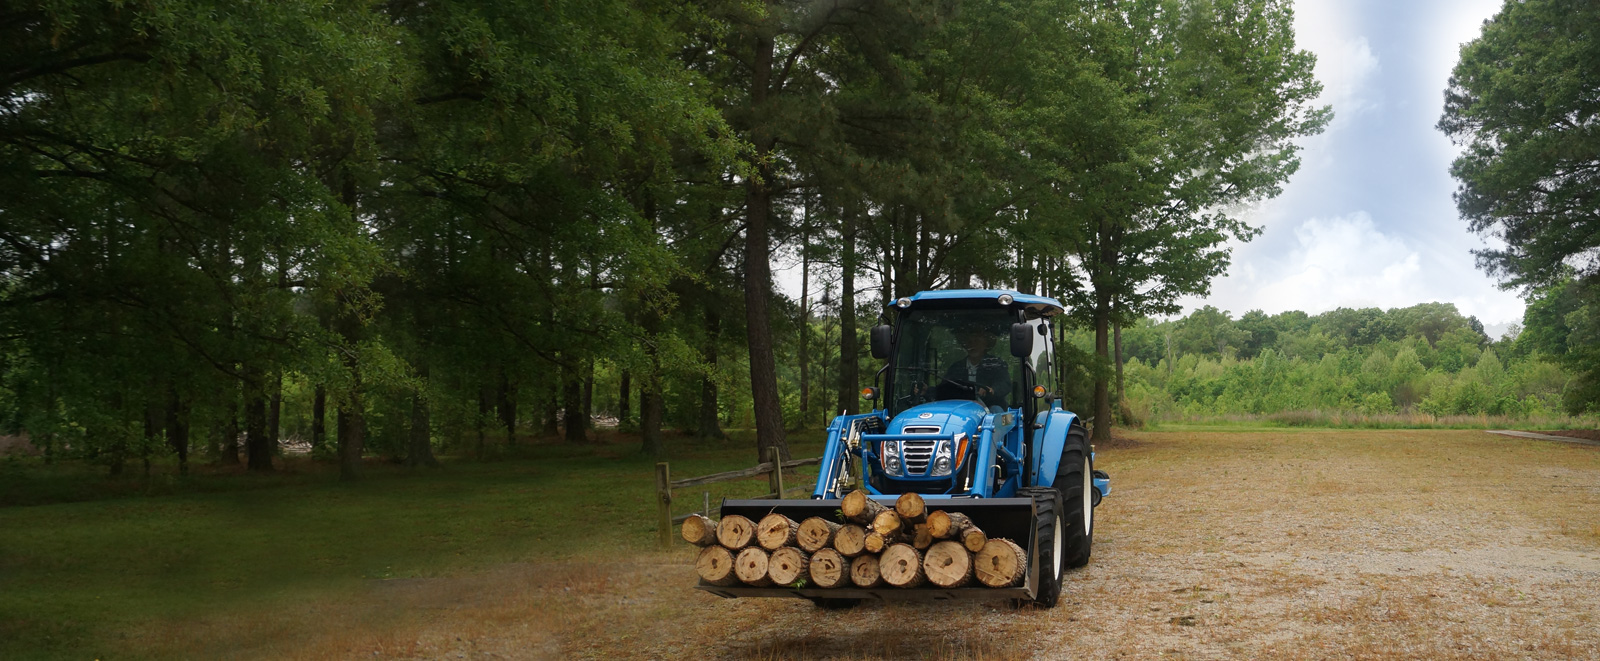 2018 LS XR Compact Tractor